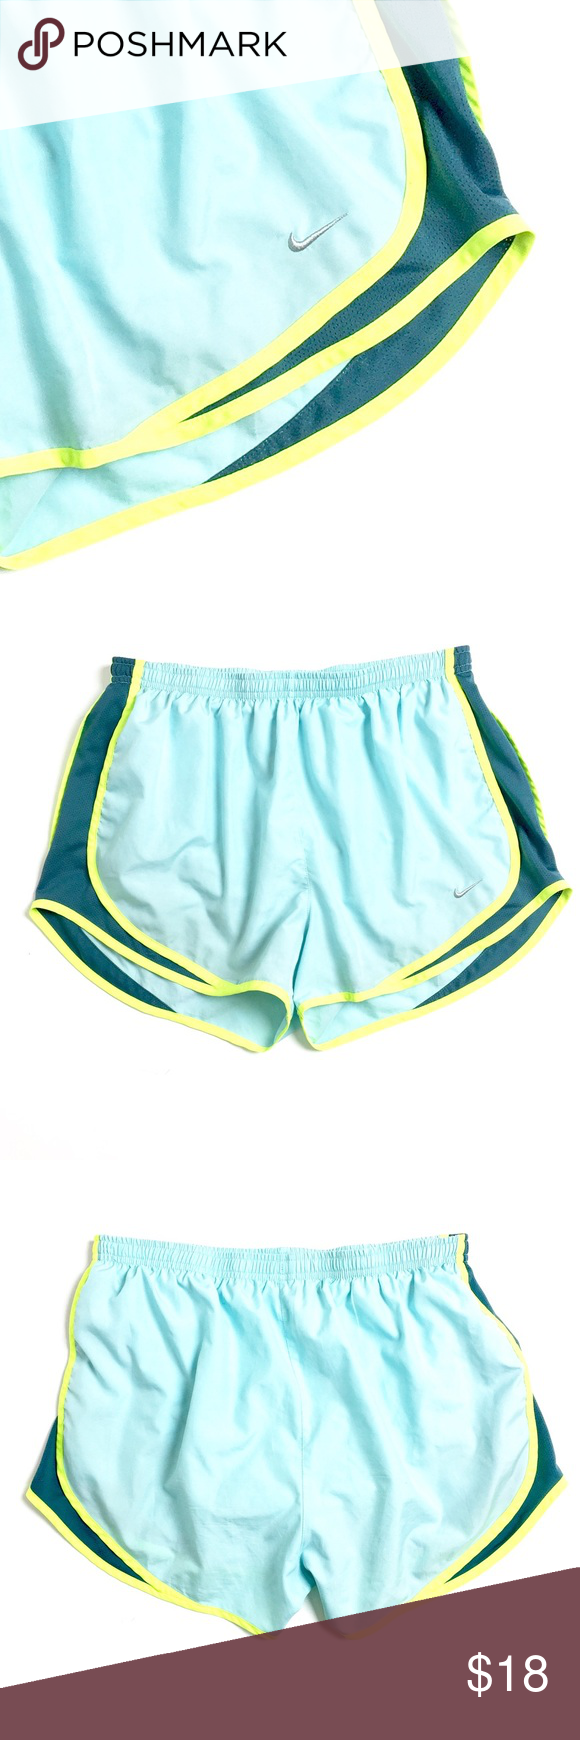 Nike Shorts Nike Dri-Fit brightly colored running shorts (or, hey, lounging around shorts!) in a size L. EUC. Retail $45. Nike Shorts